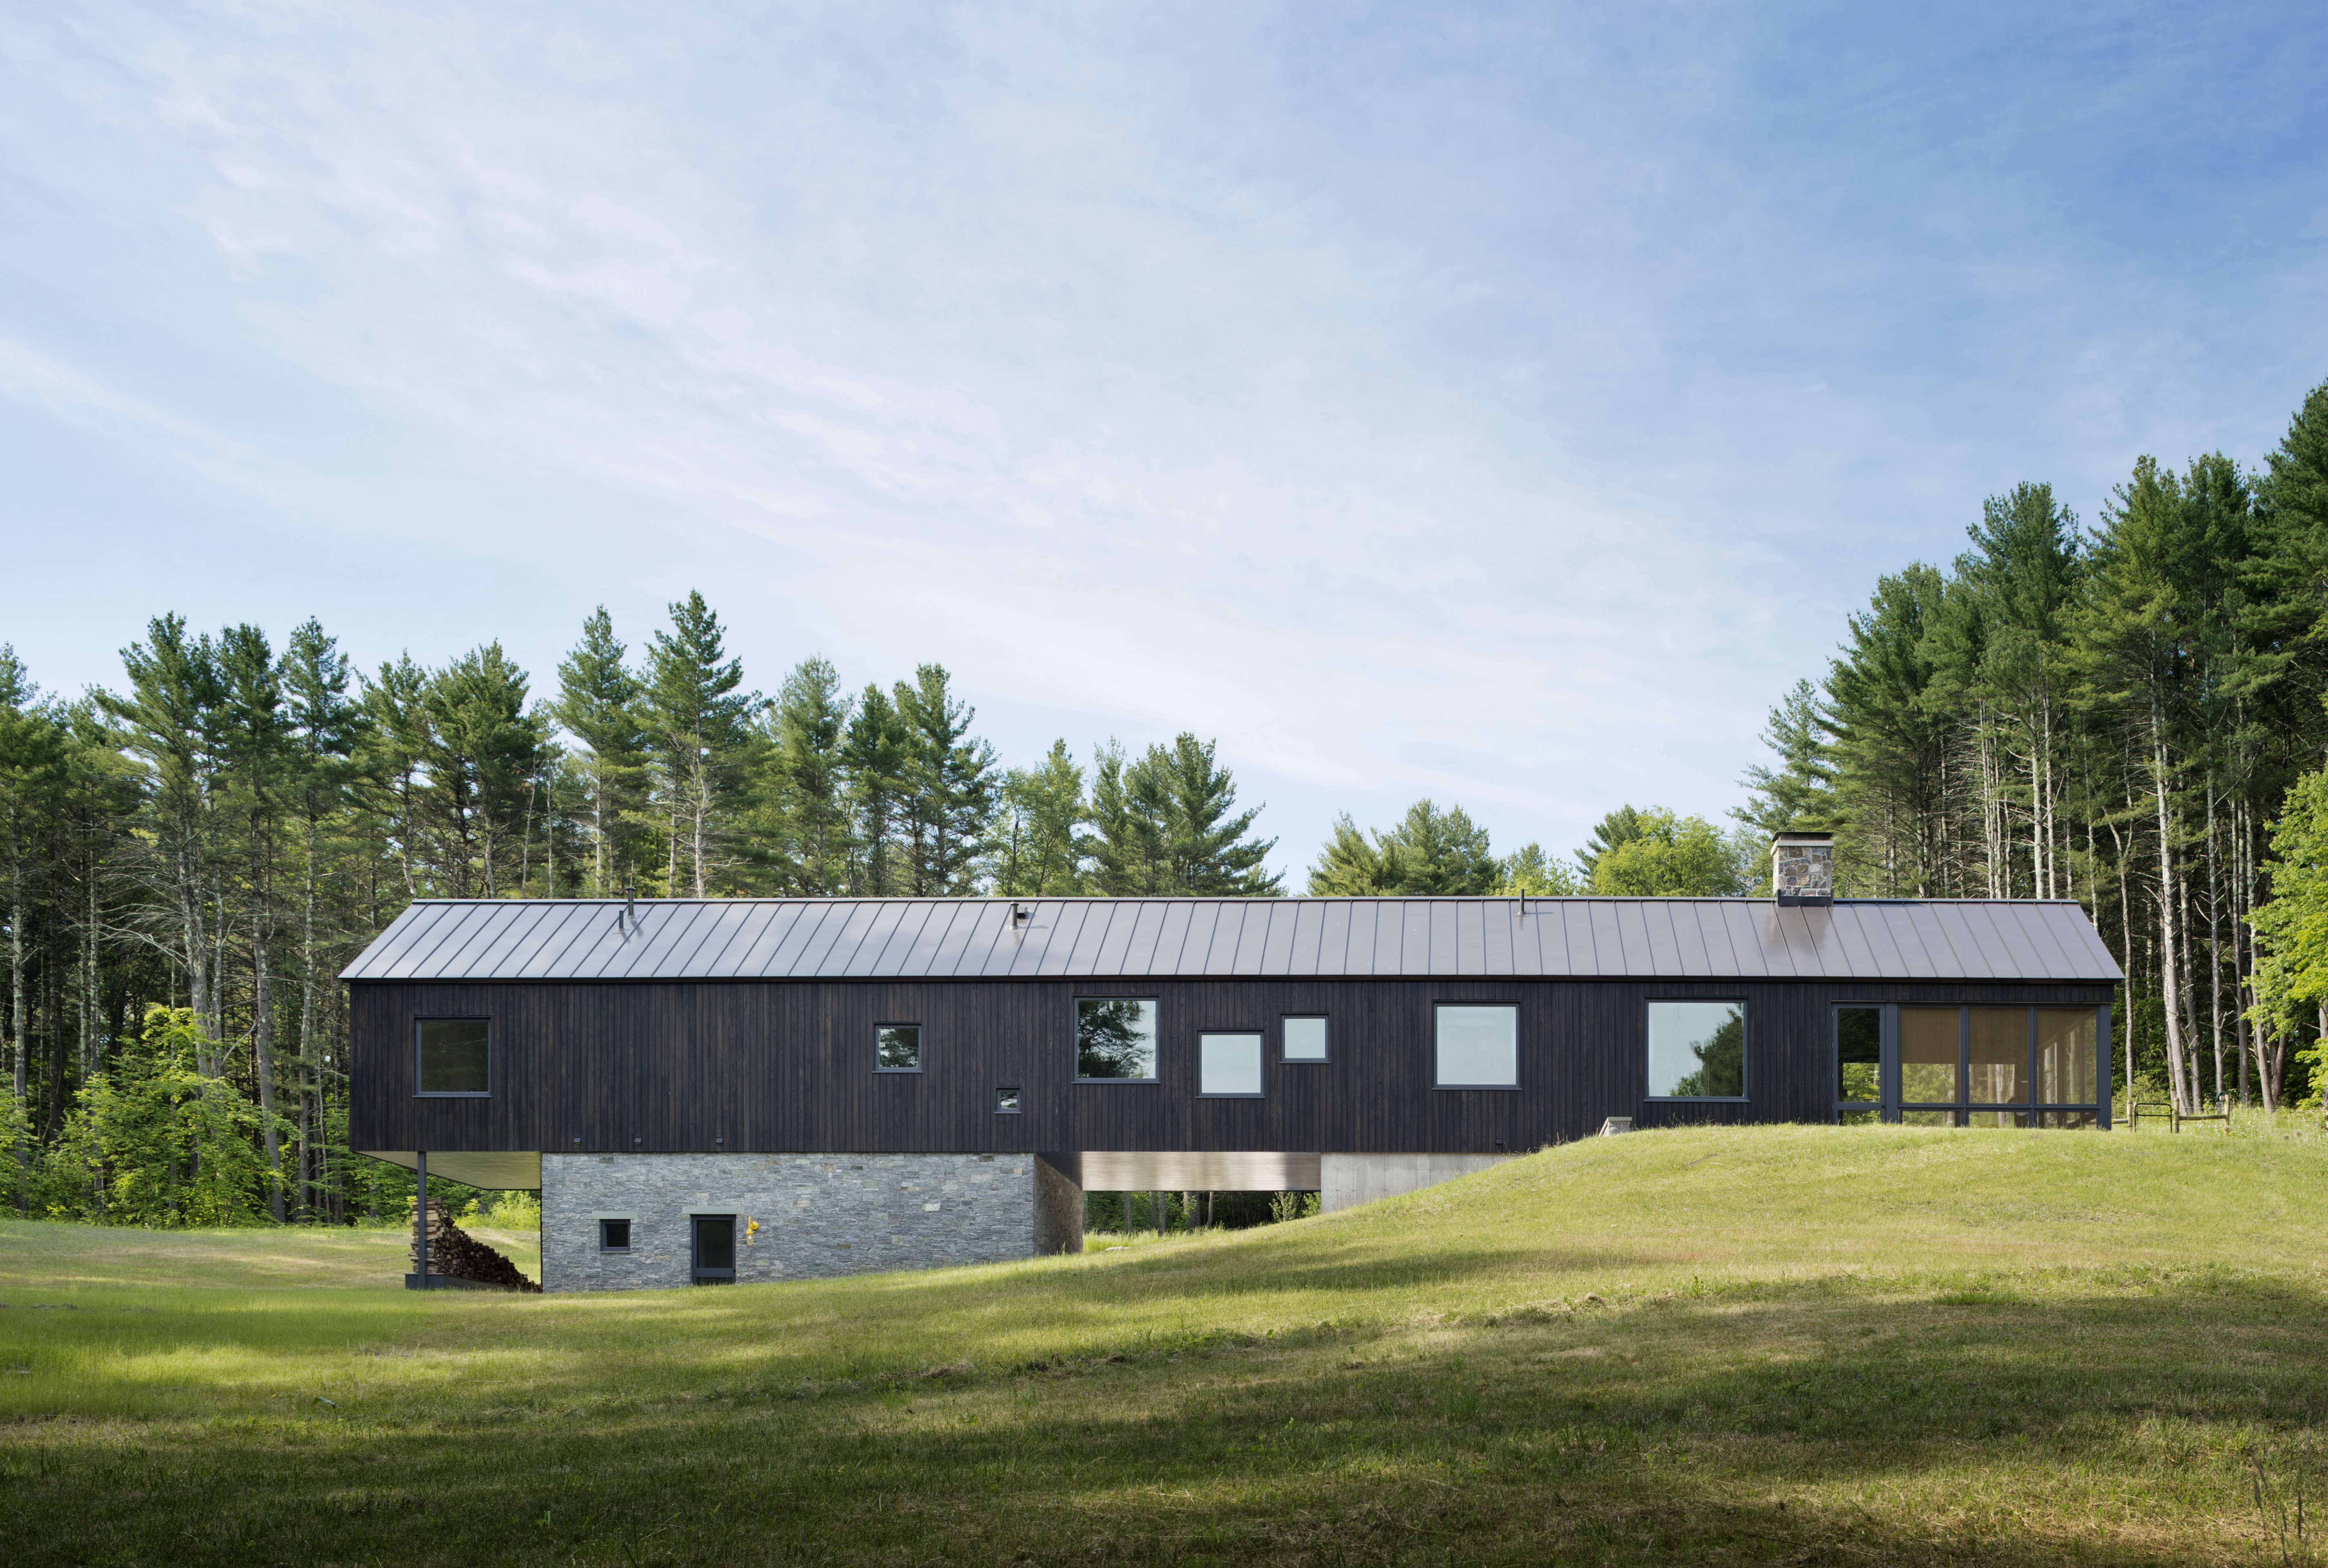 undermountain a low impact barn style house in the berkshires by o'neill rose a 11